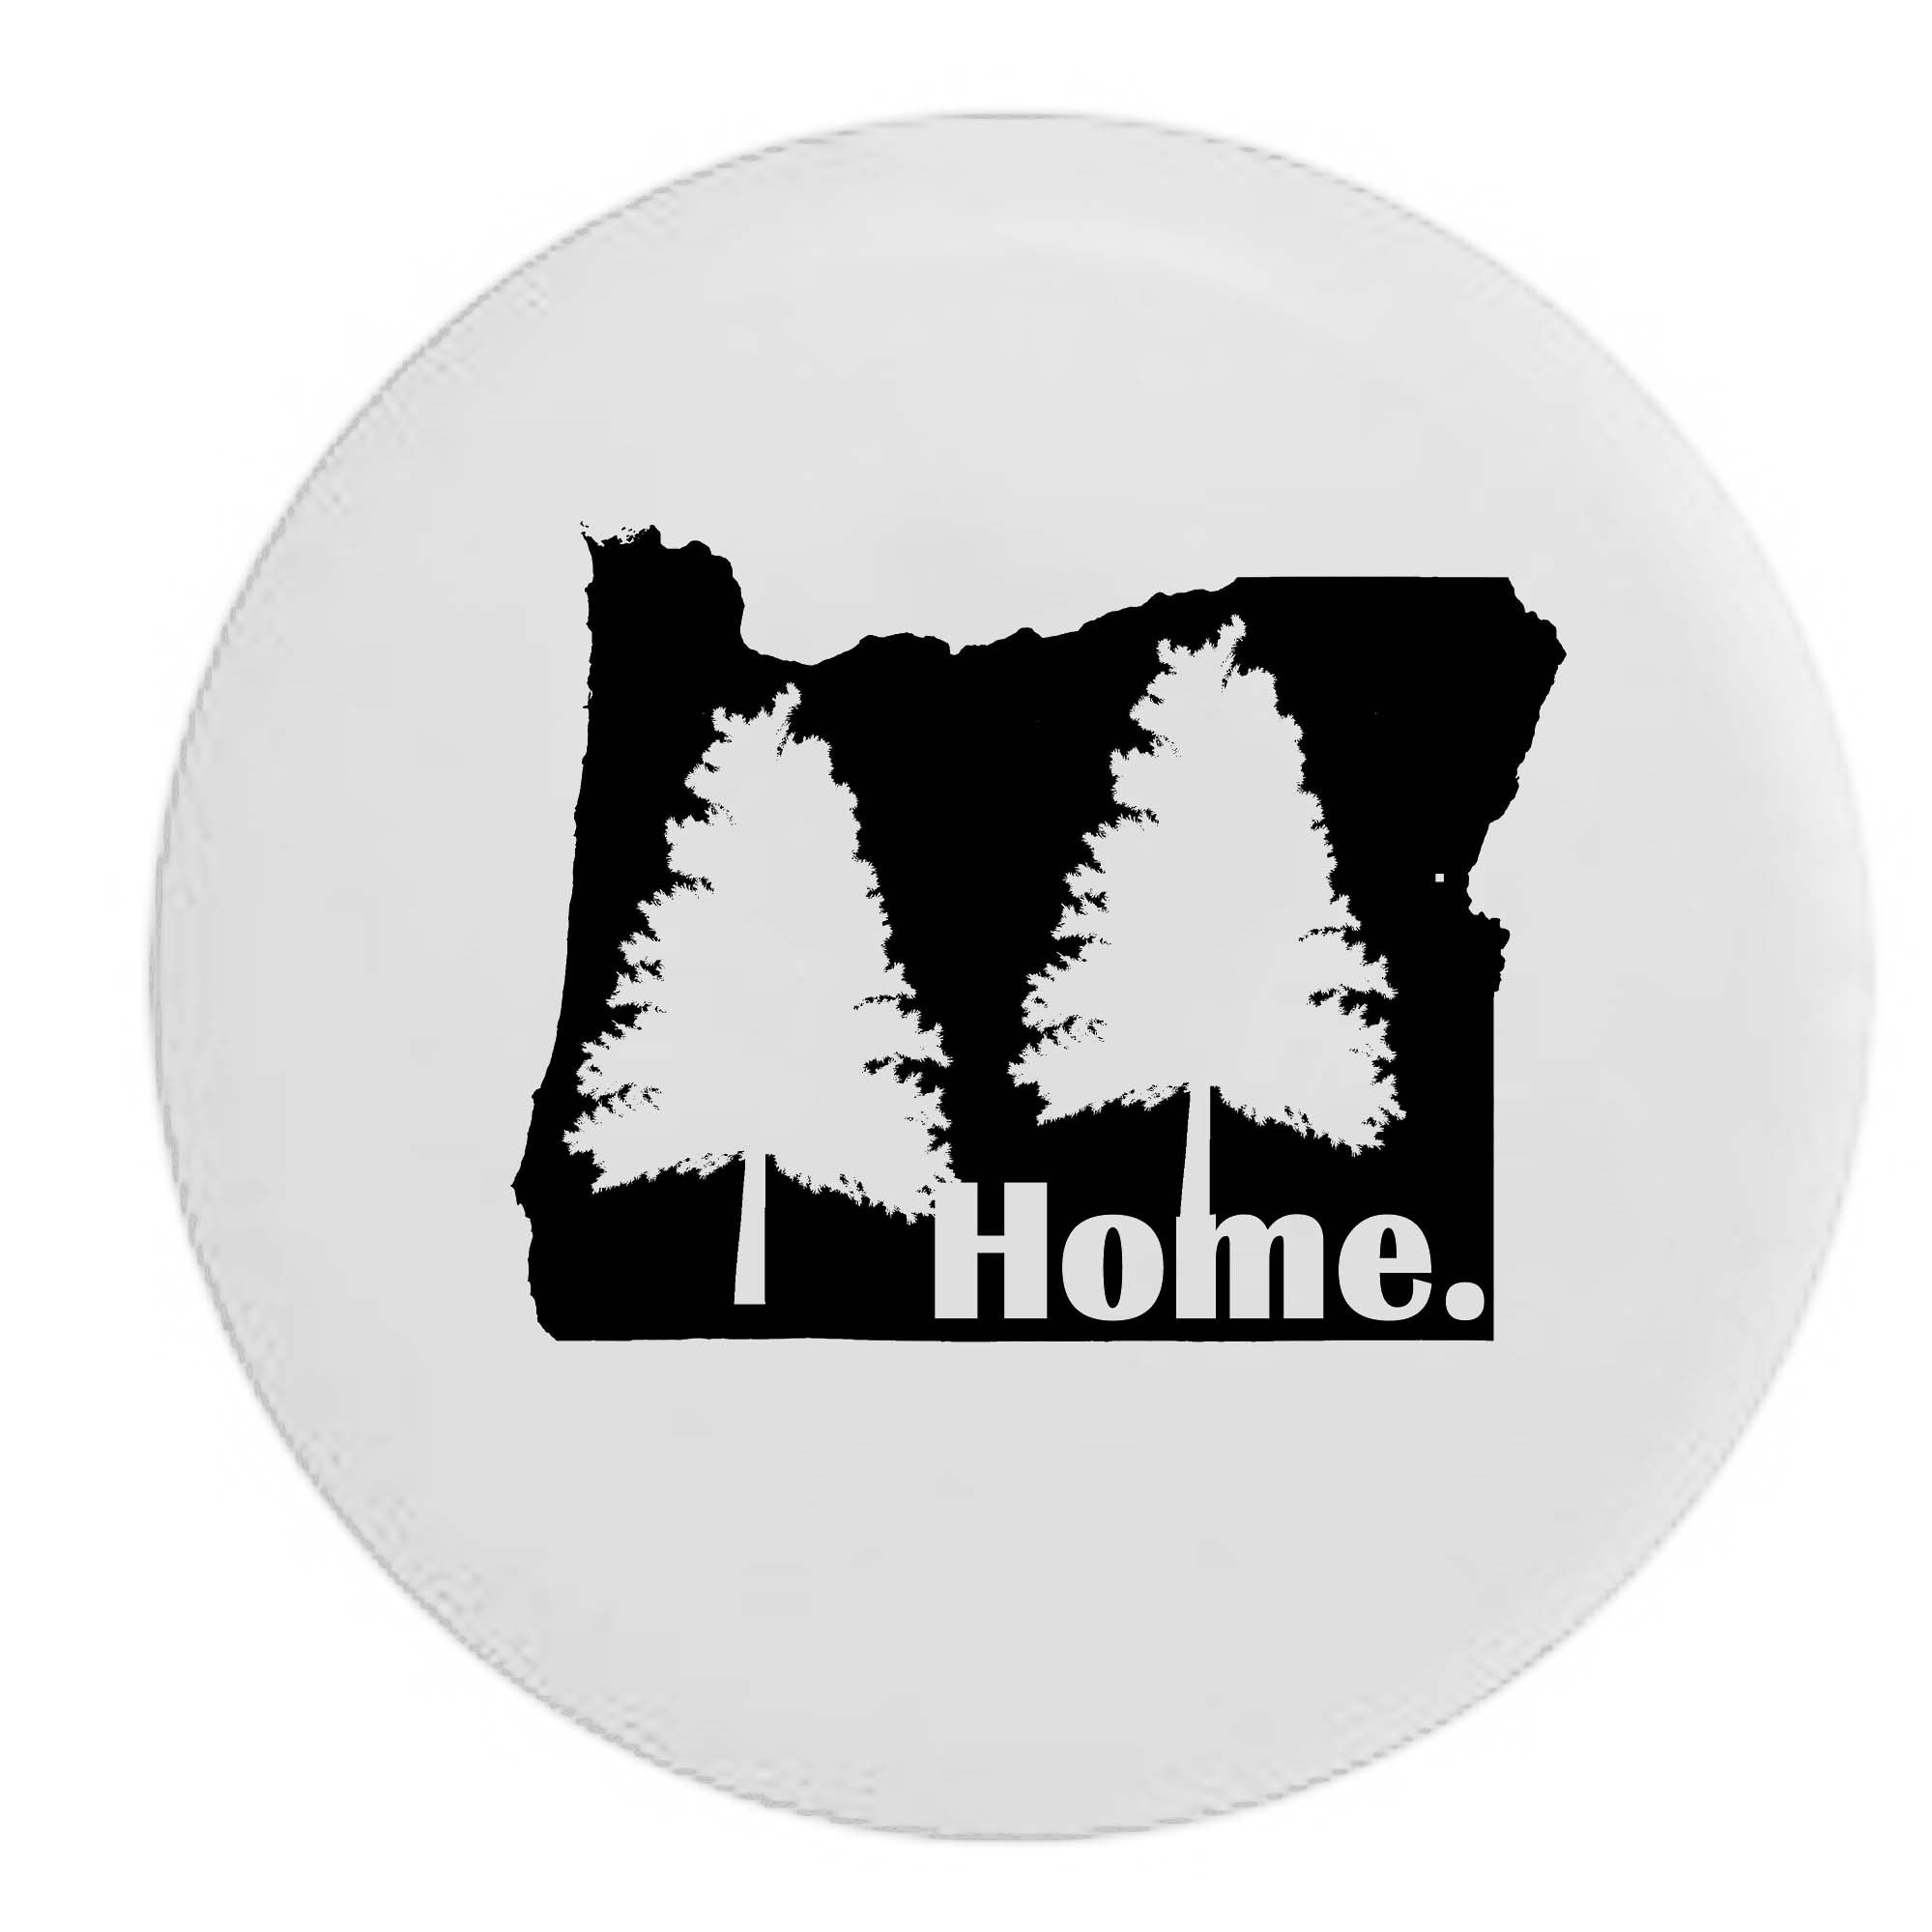 Oregon Pine Trees Home State Edition RV Spare Tire Cover OEM Vinyl White 30 in by Pike Outdoors